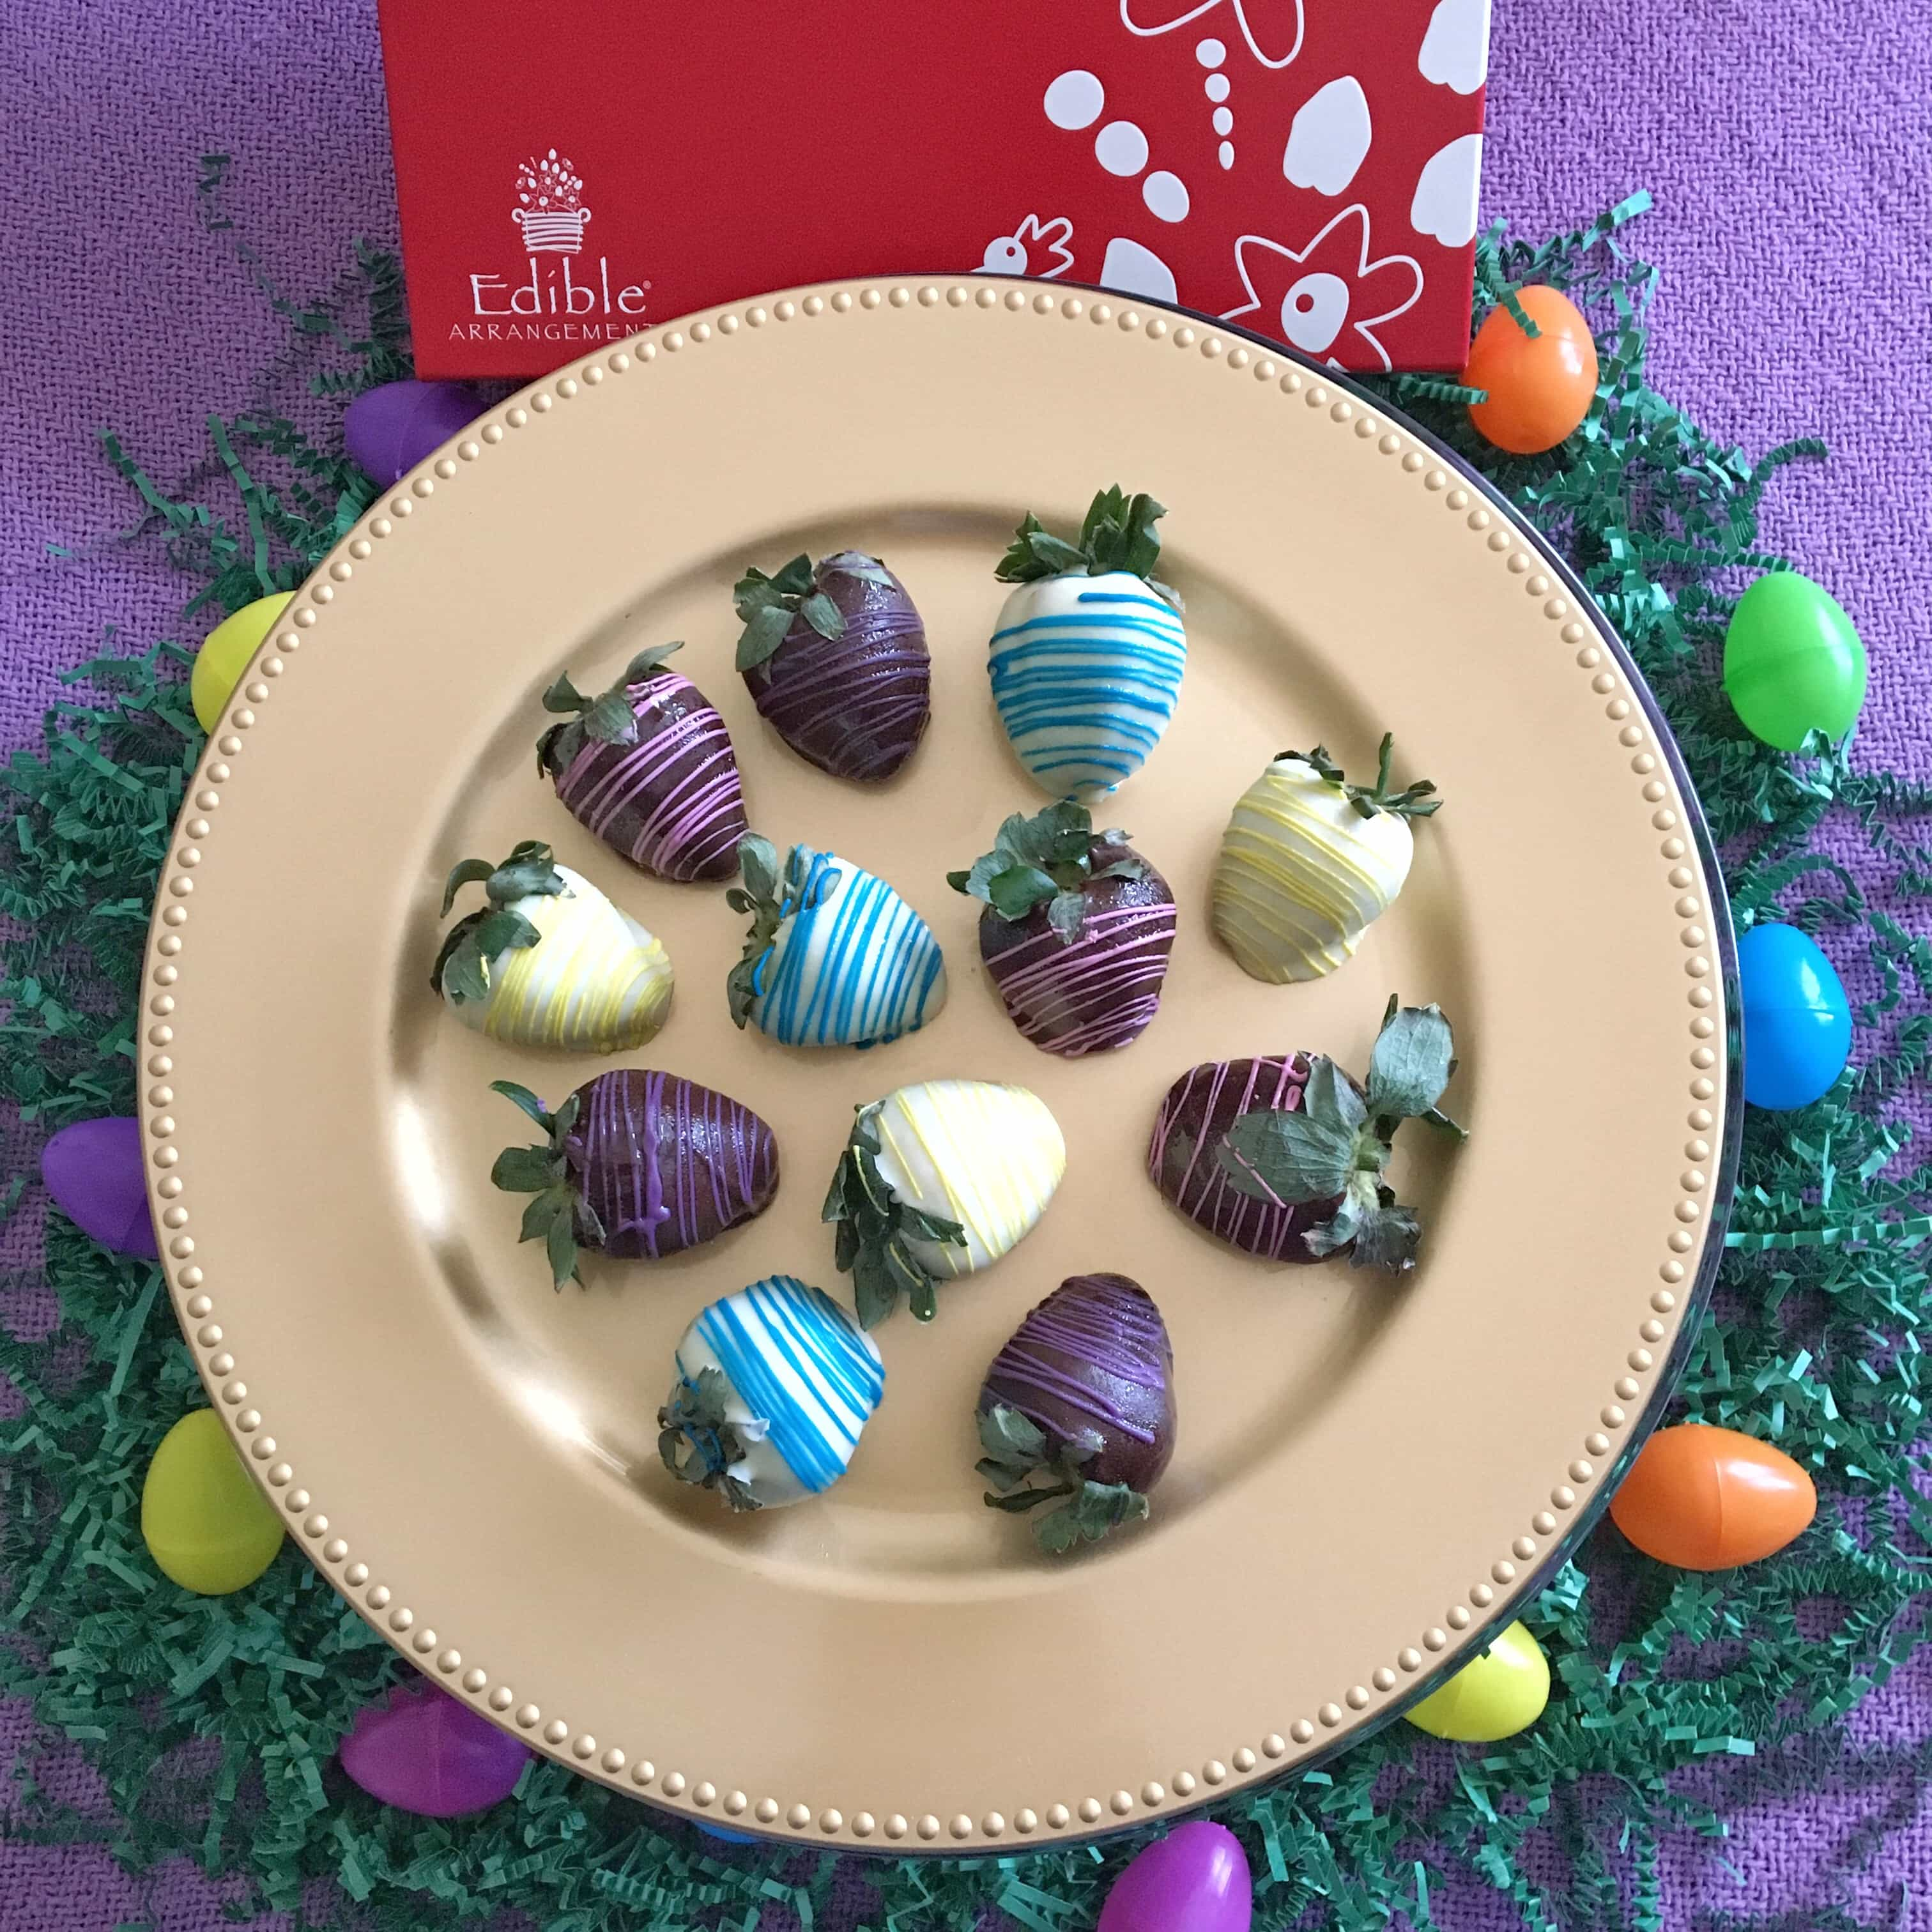 Spring time essentials for the whole family kim and carrie these chocolate covered swizzle berries from edible arrangements are amazing they are fresh strawberries dipped in semisweet and white chocolate with fun negle Choice Image